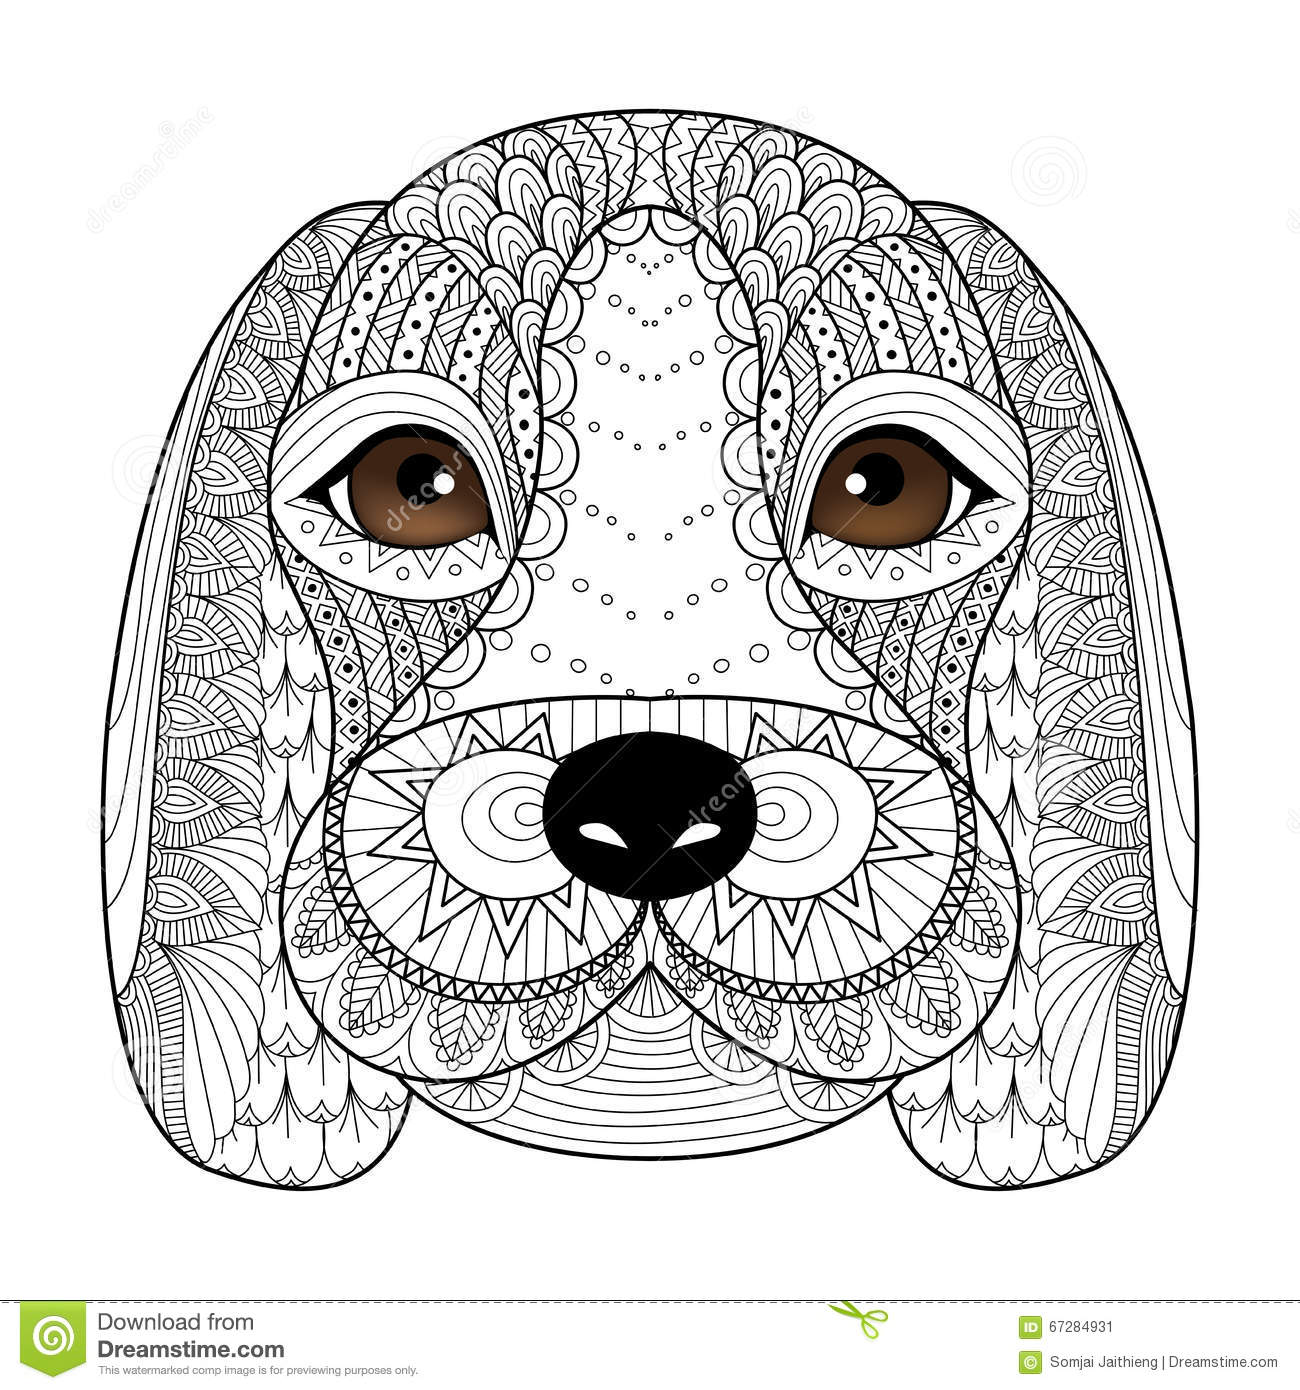 Puppy Line Art For Coloring Book Adult T shirt Design Tattoo And